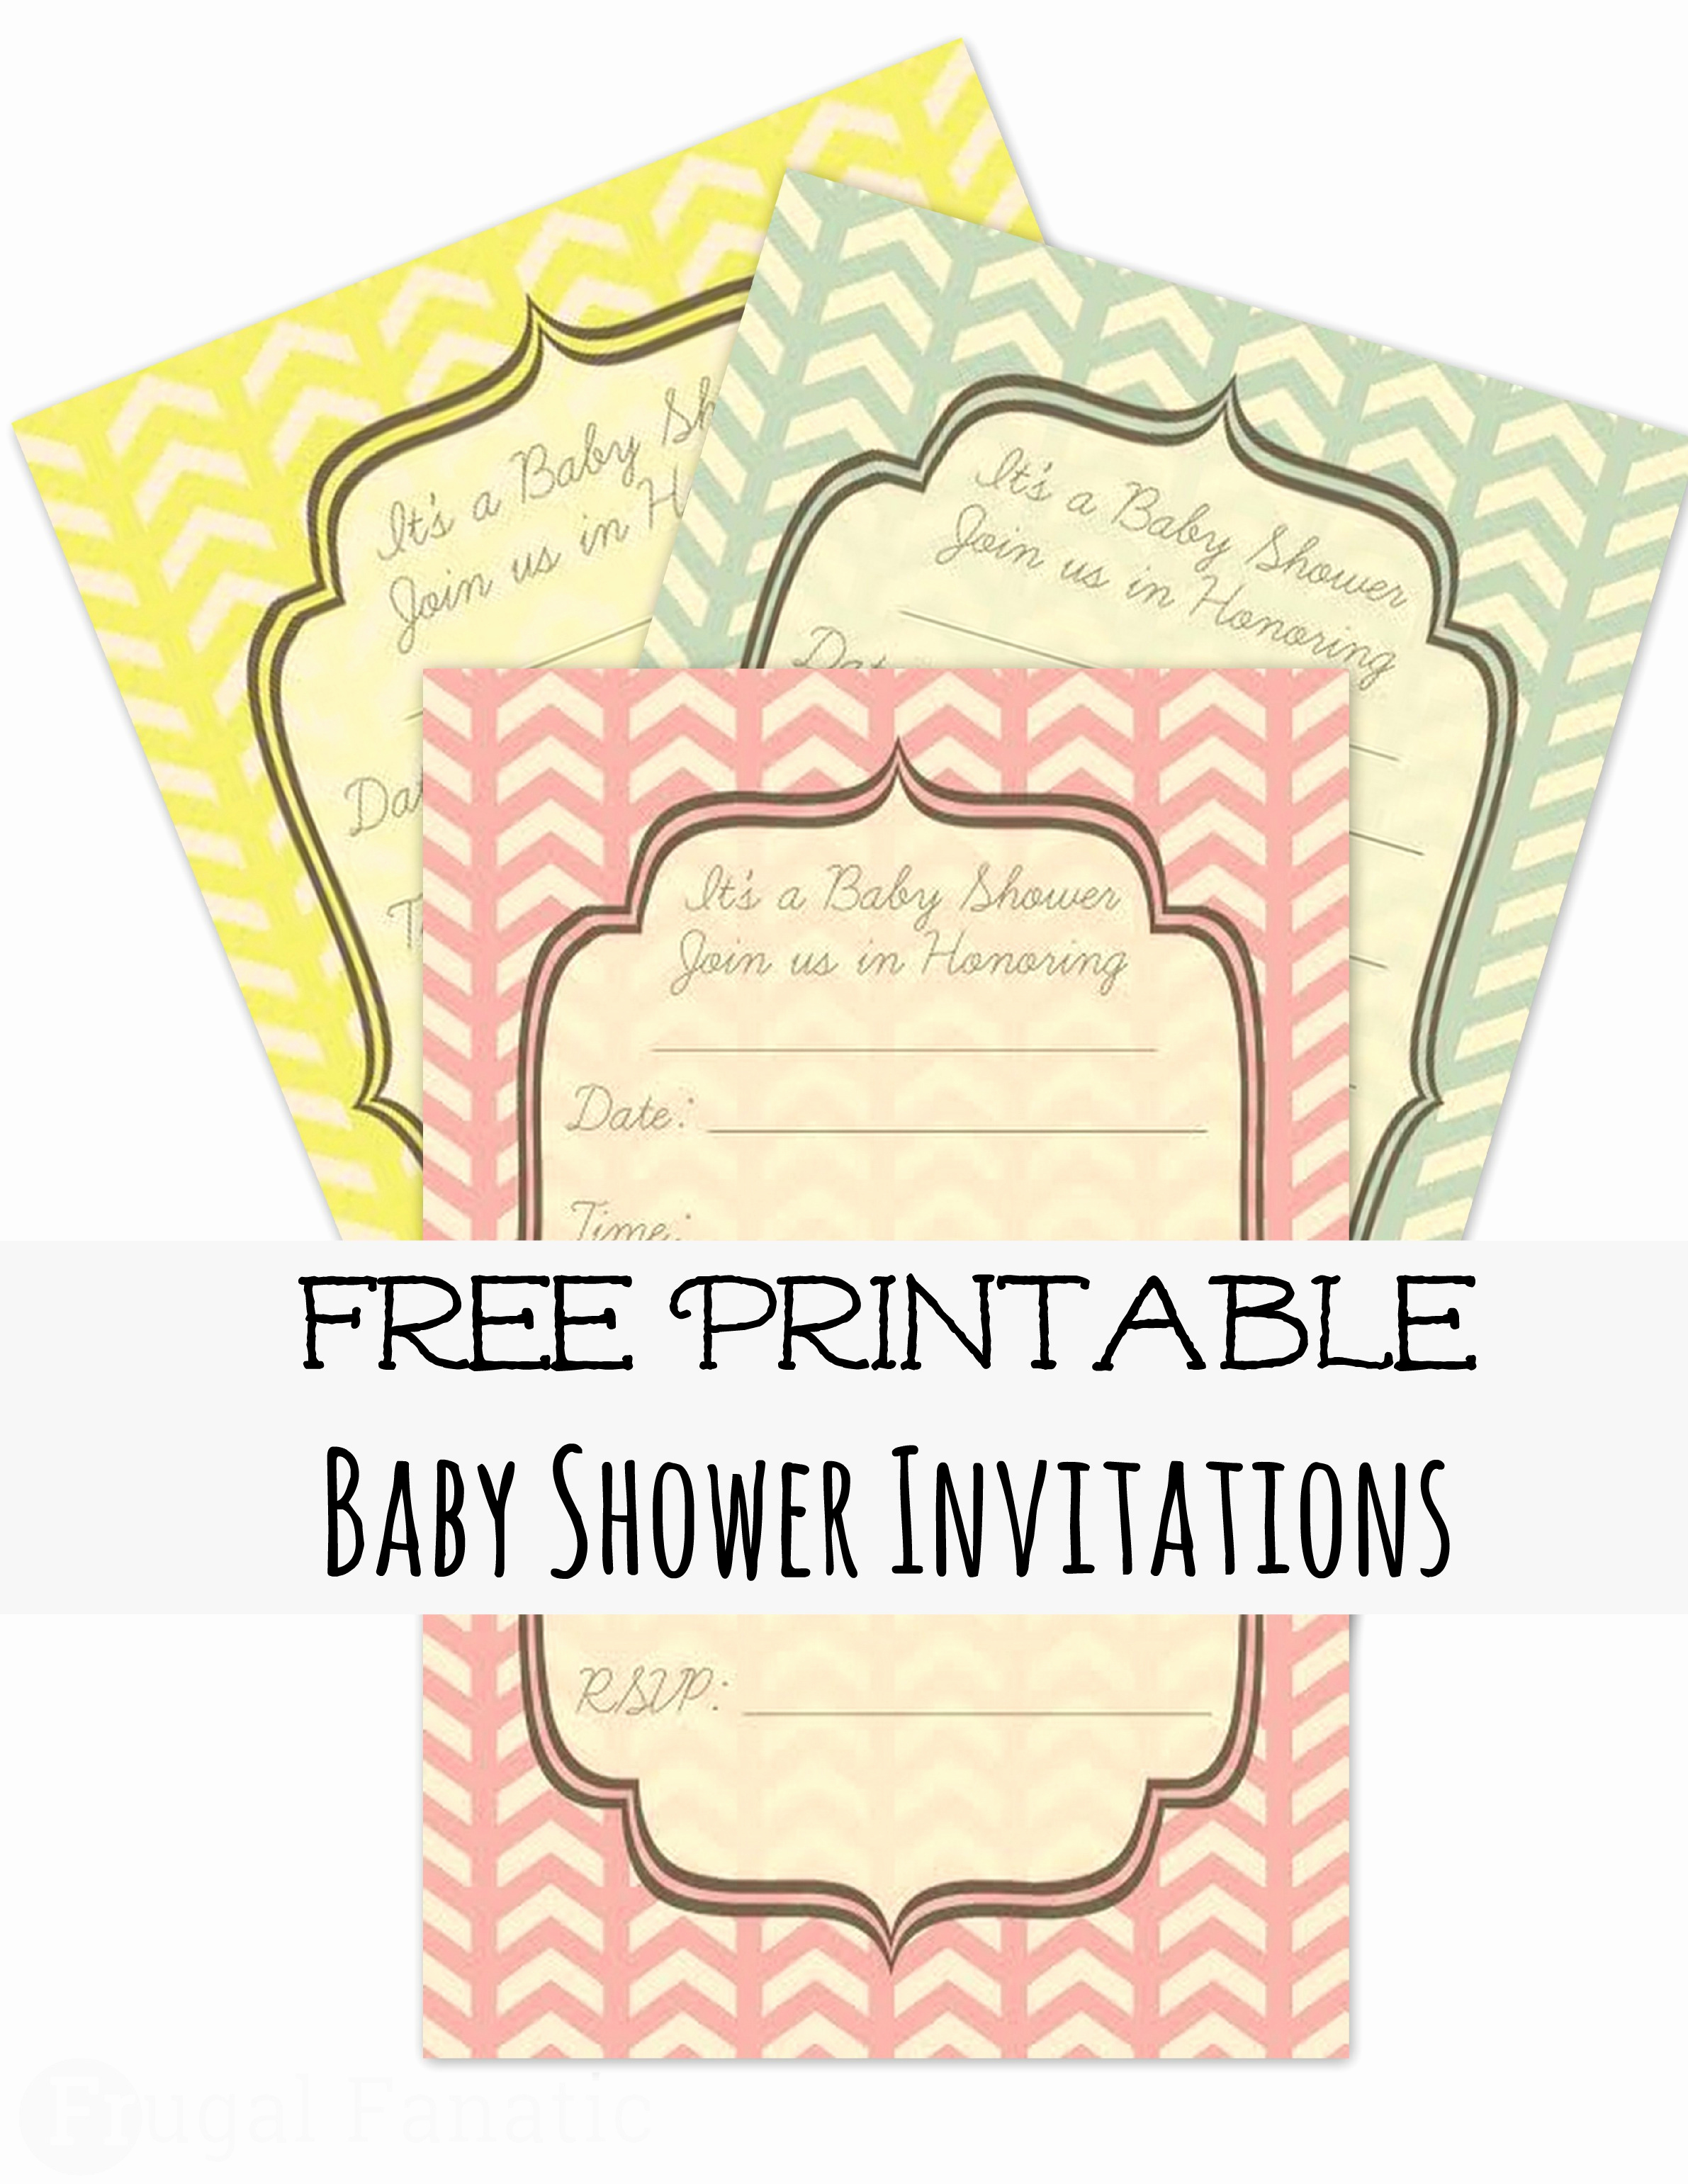 Baby Shower Invitation Free Printable Beautiful Free Baby Shower Invites Frugal Fanatic